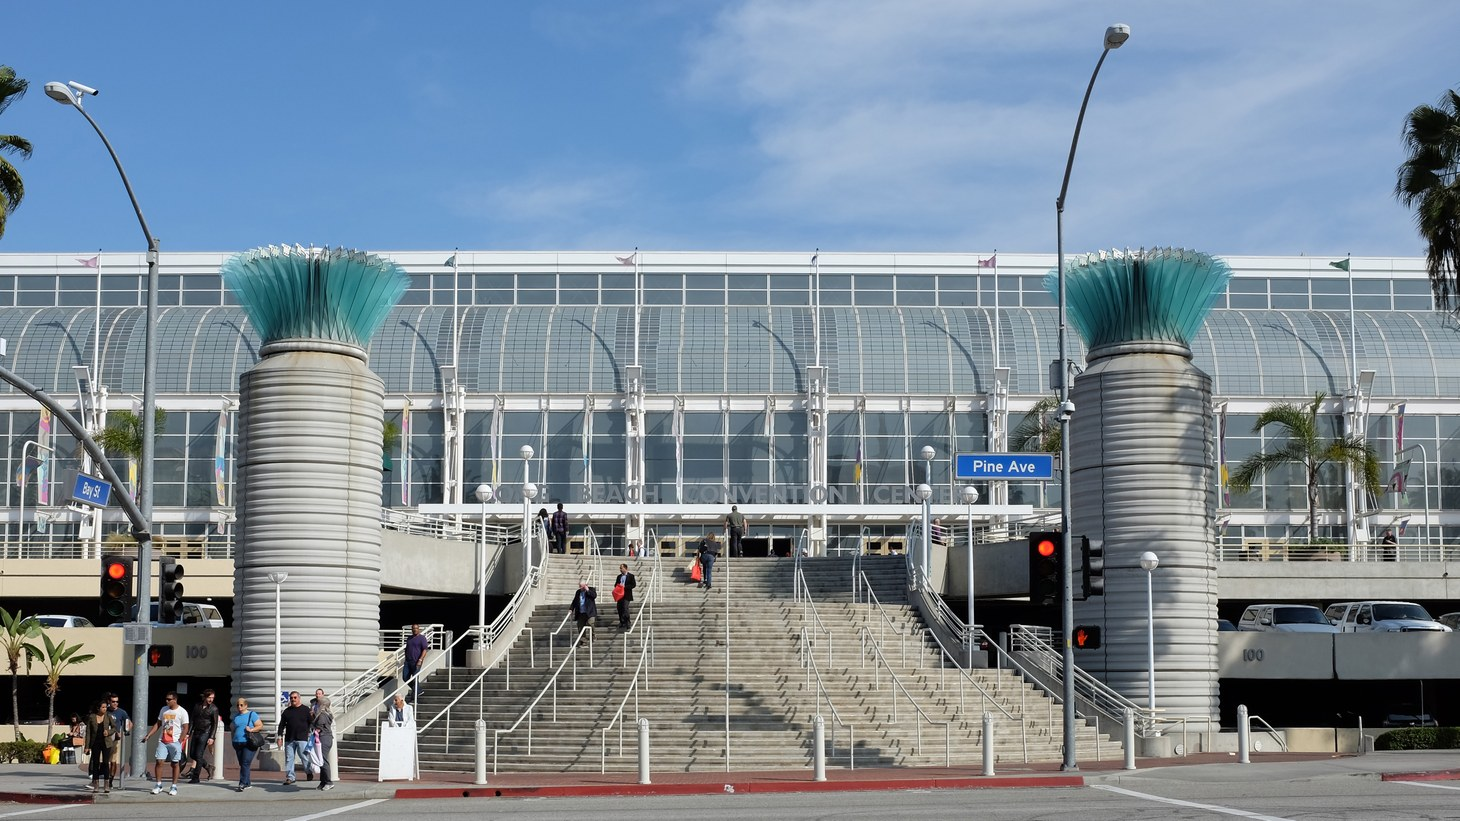 The Long Beach Convention Center is seen on April 7, 2021. The city's mayor, Robert Garcia, said the center will host 1,000 migrant children.